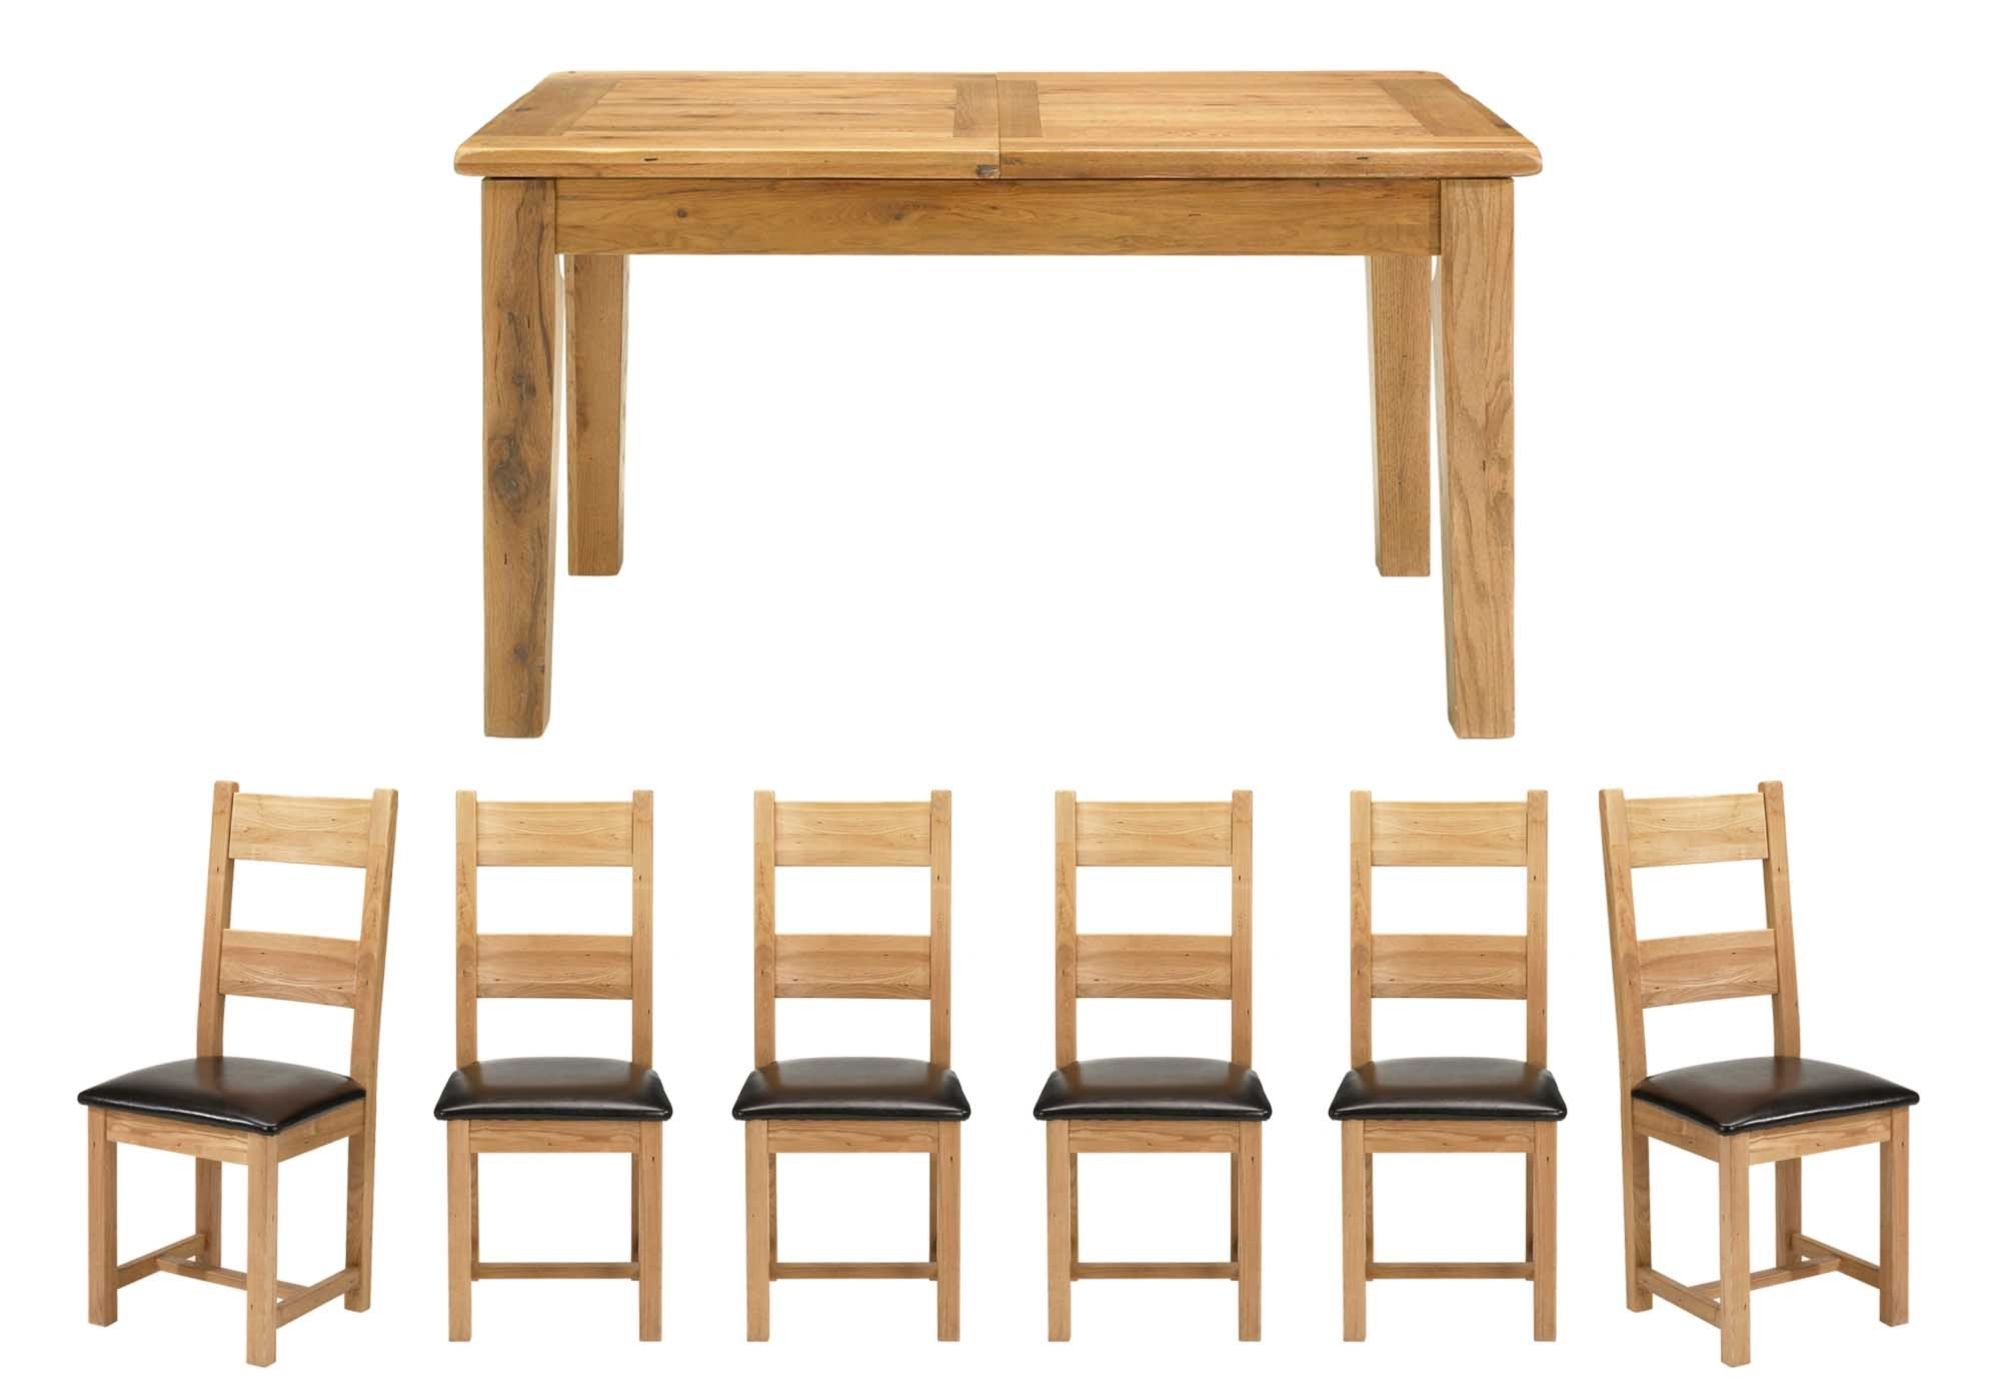 extending table 6 wooden chairs lyon dining tables and chairs